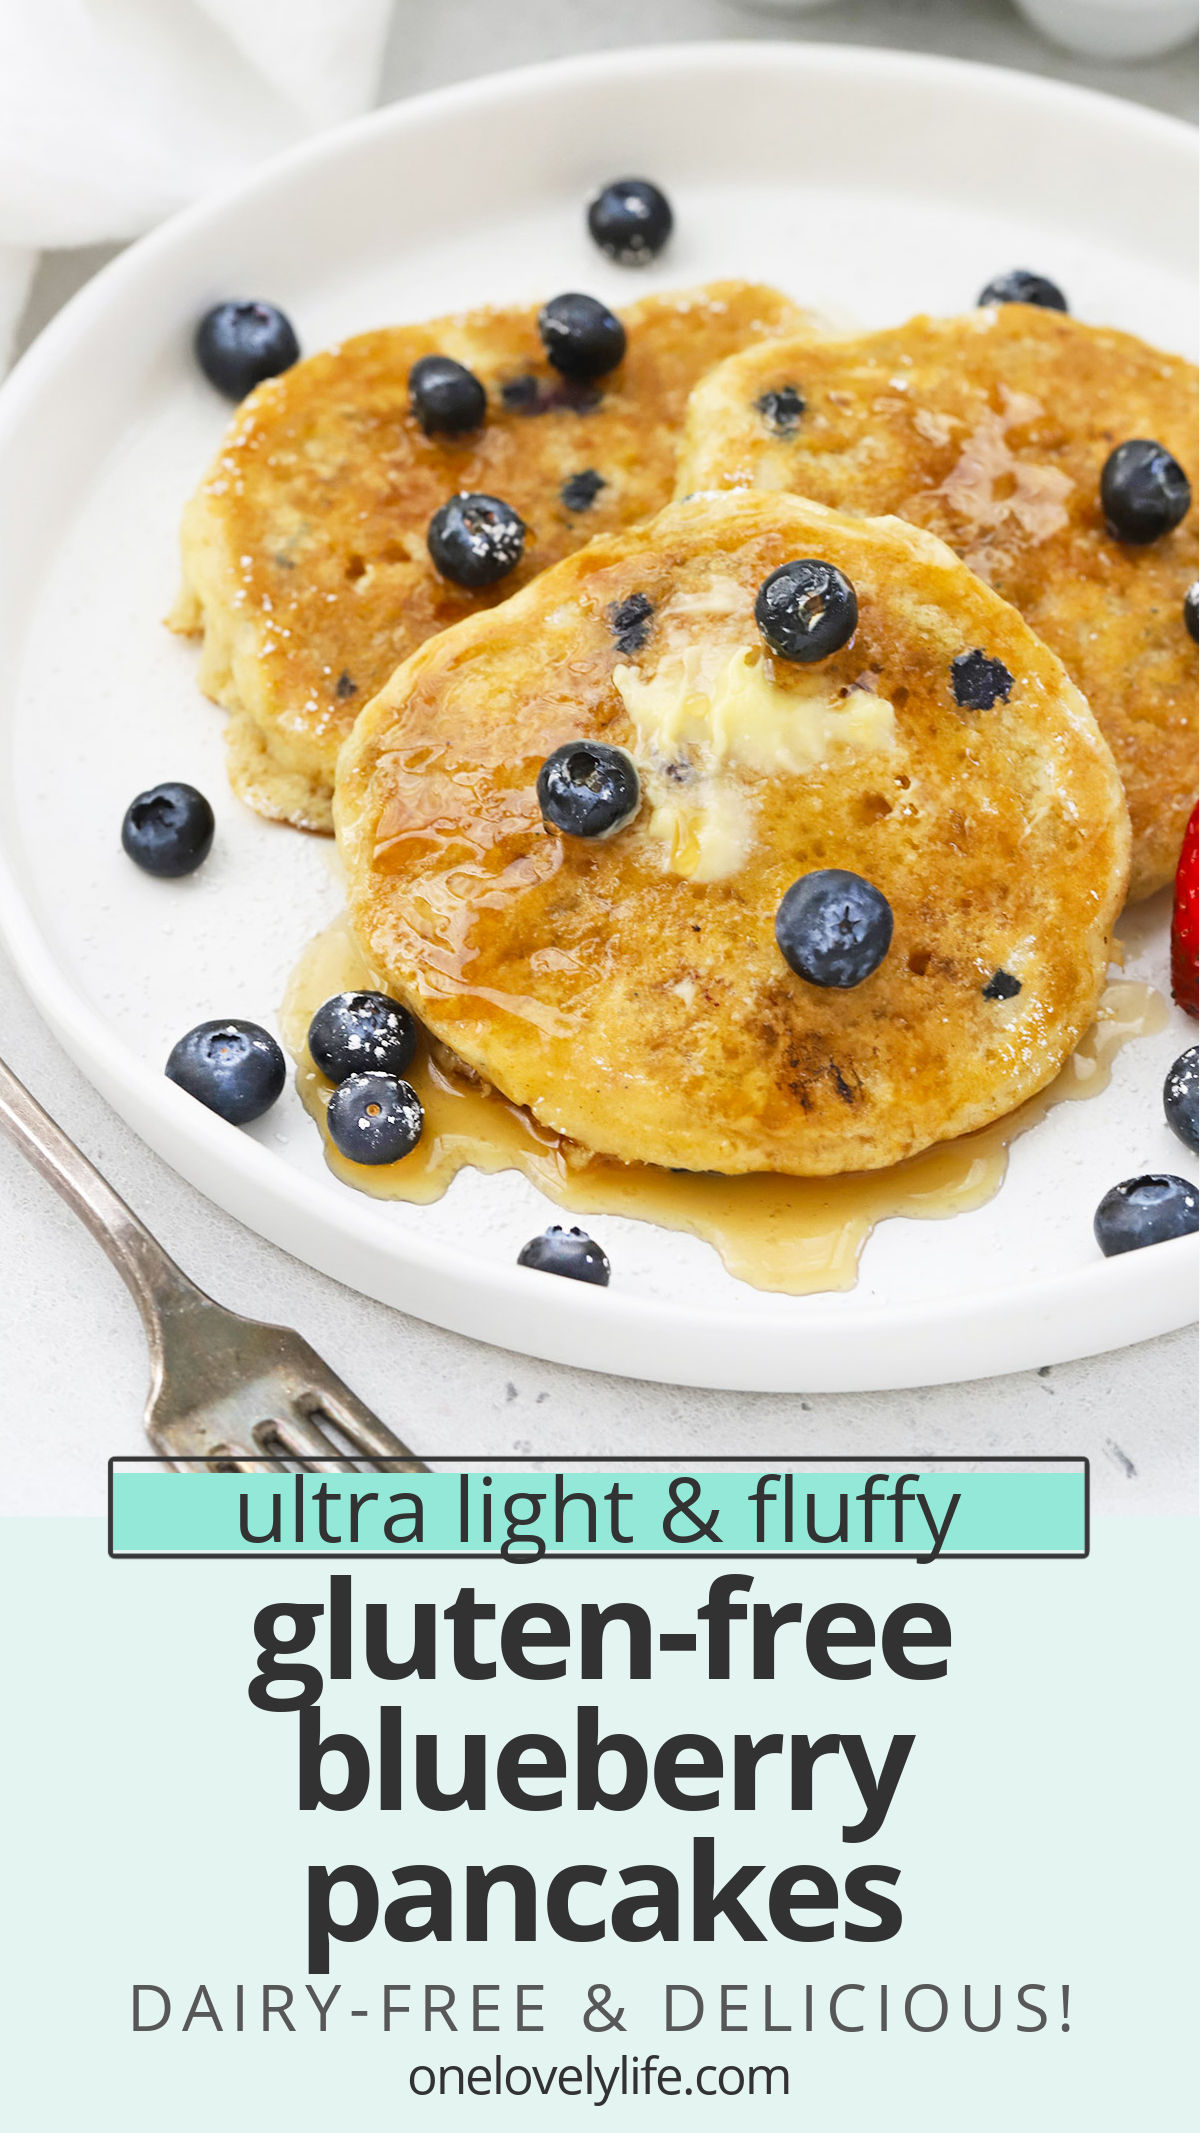 Fluffy Gluten-Free Blueberry Pancakes - These impossibly light, fluffy blueberry buttermilk pancakes are gluten-free, dairy-free & absolutely delicious.// gluten free blueberry pancakes recipe // dairy free blueberry pancakes // the best gluten-free blueberry pancakes // Gluten Free buttermilk blueberry pancakes #pancakes #blueberry #glutenfree #glutenfreepancakes